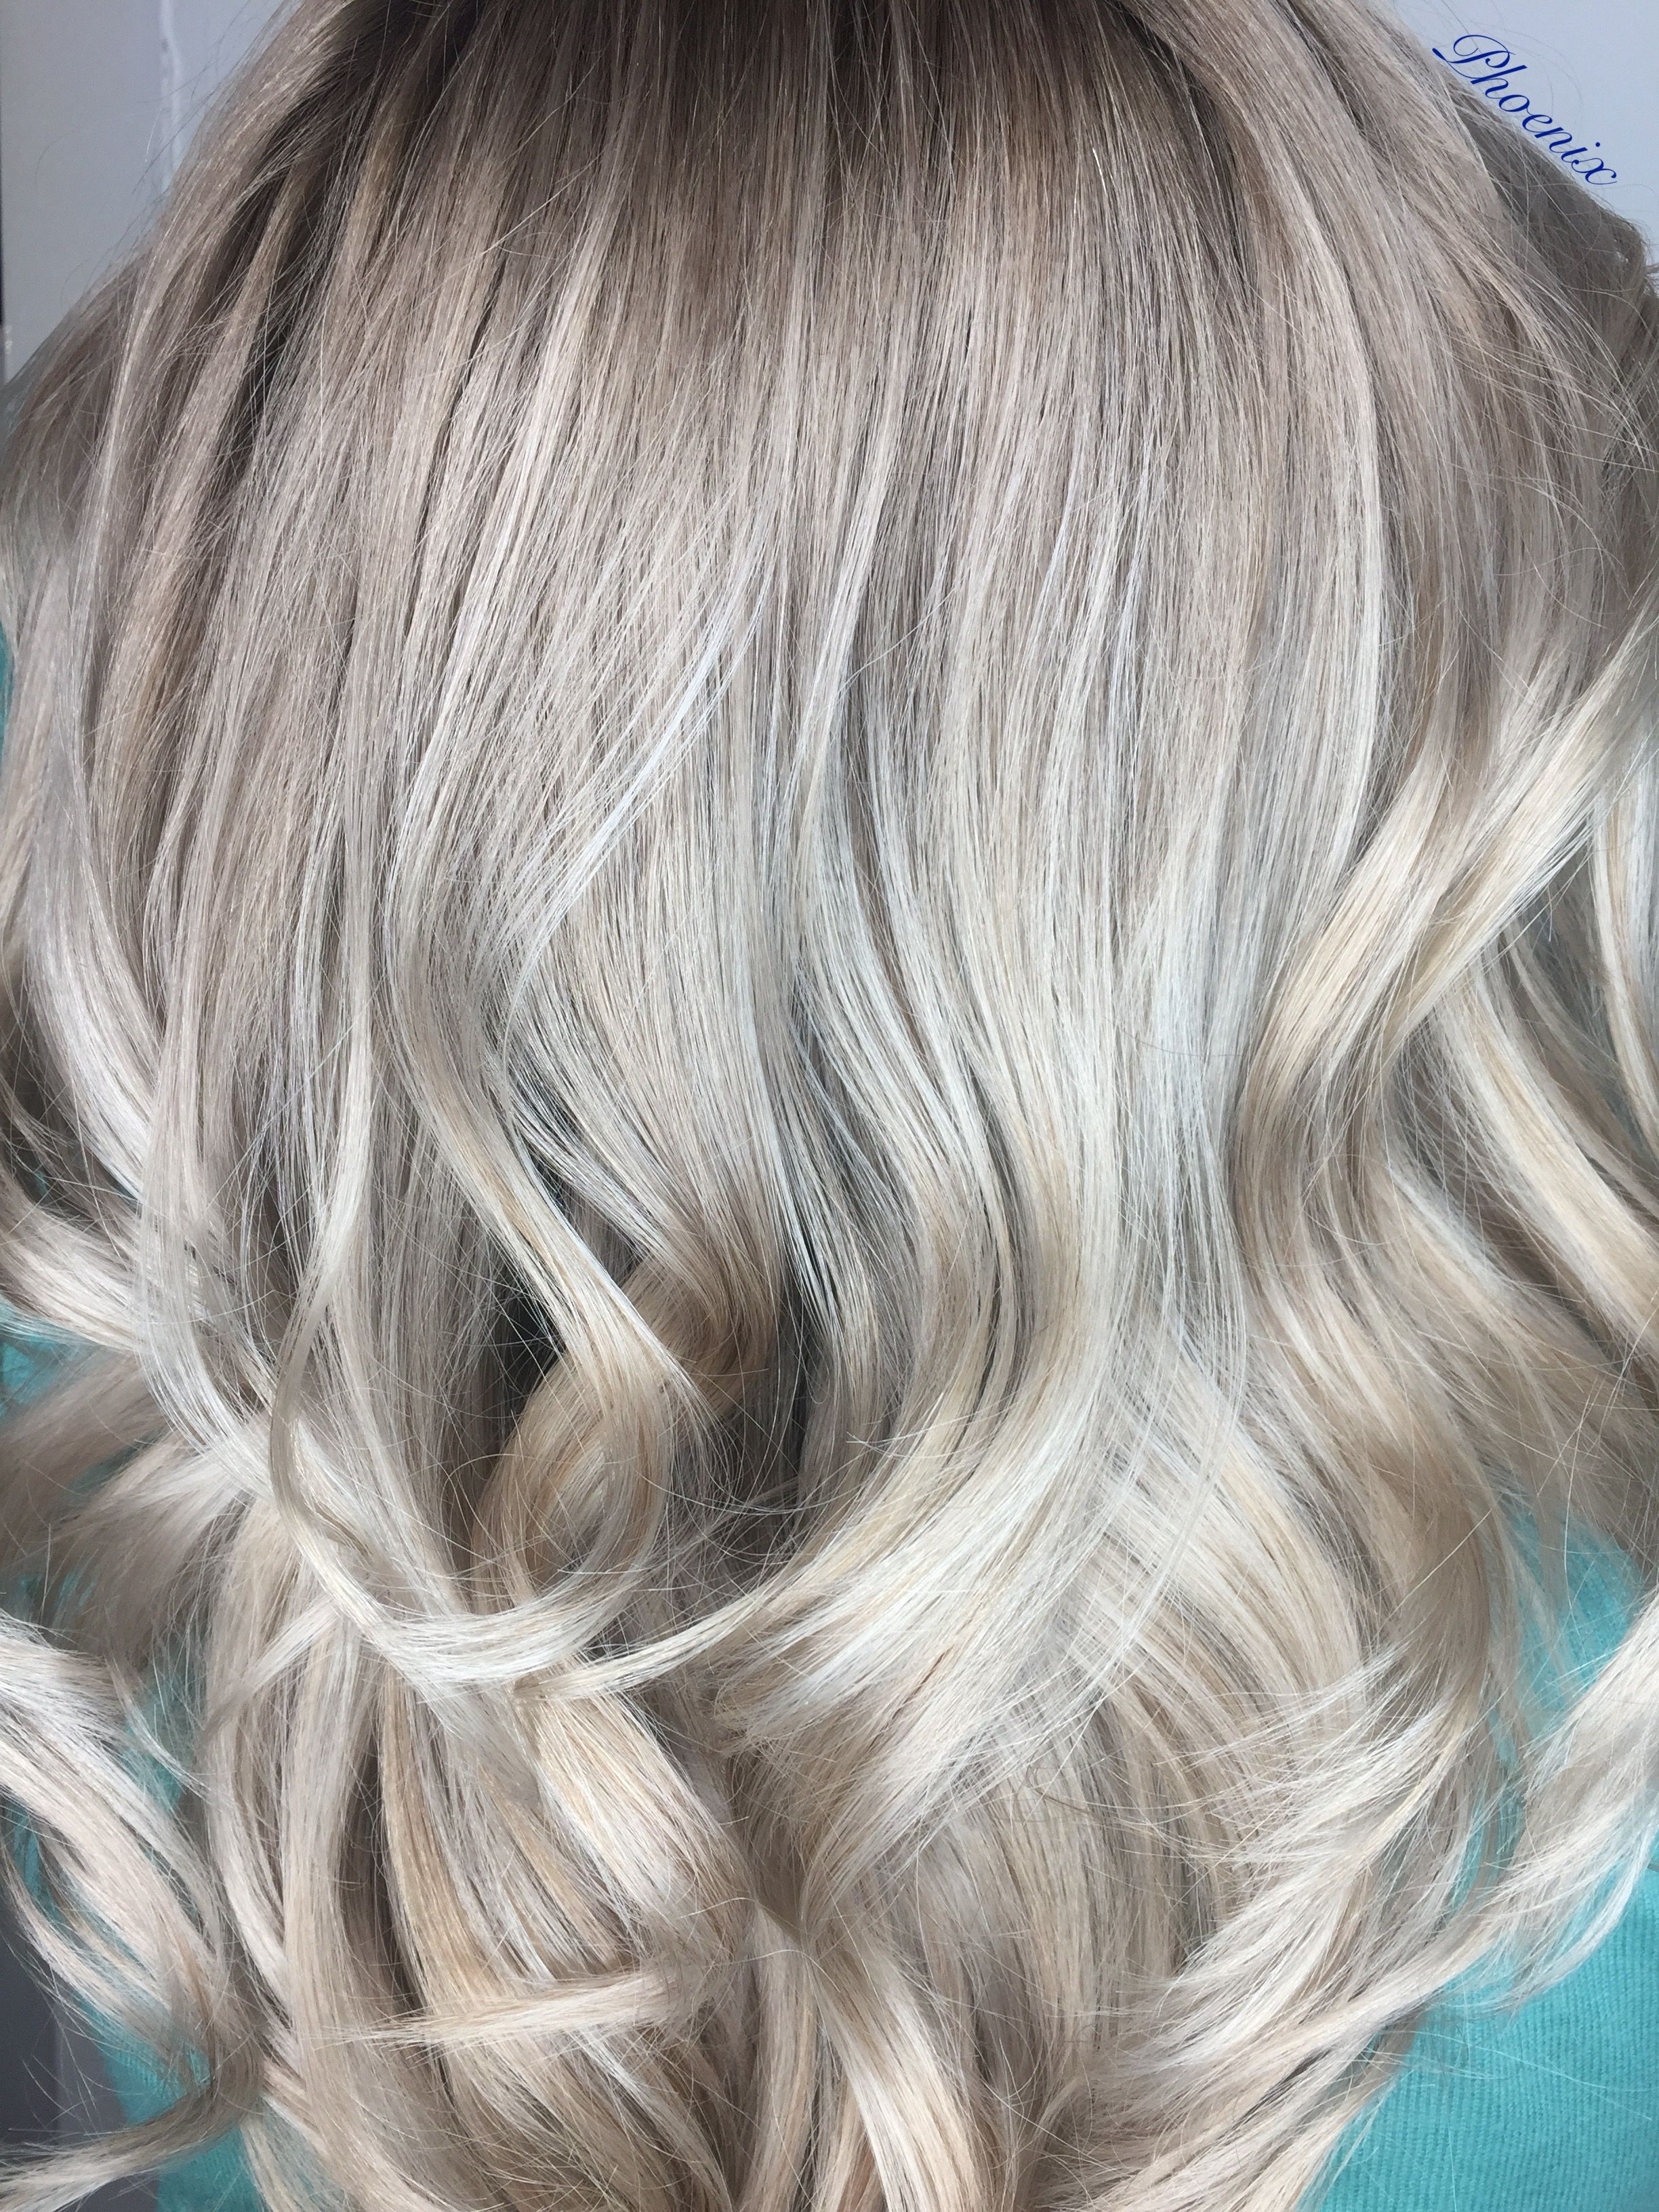 Colour Melt Ice Blonde Matrix Sync Long Hair Ghd Curls Matrix Oil